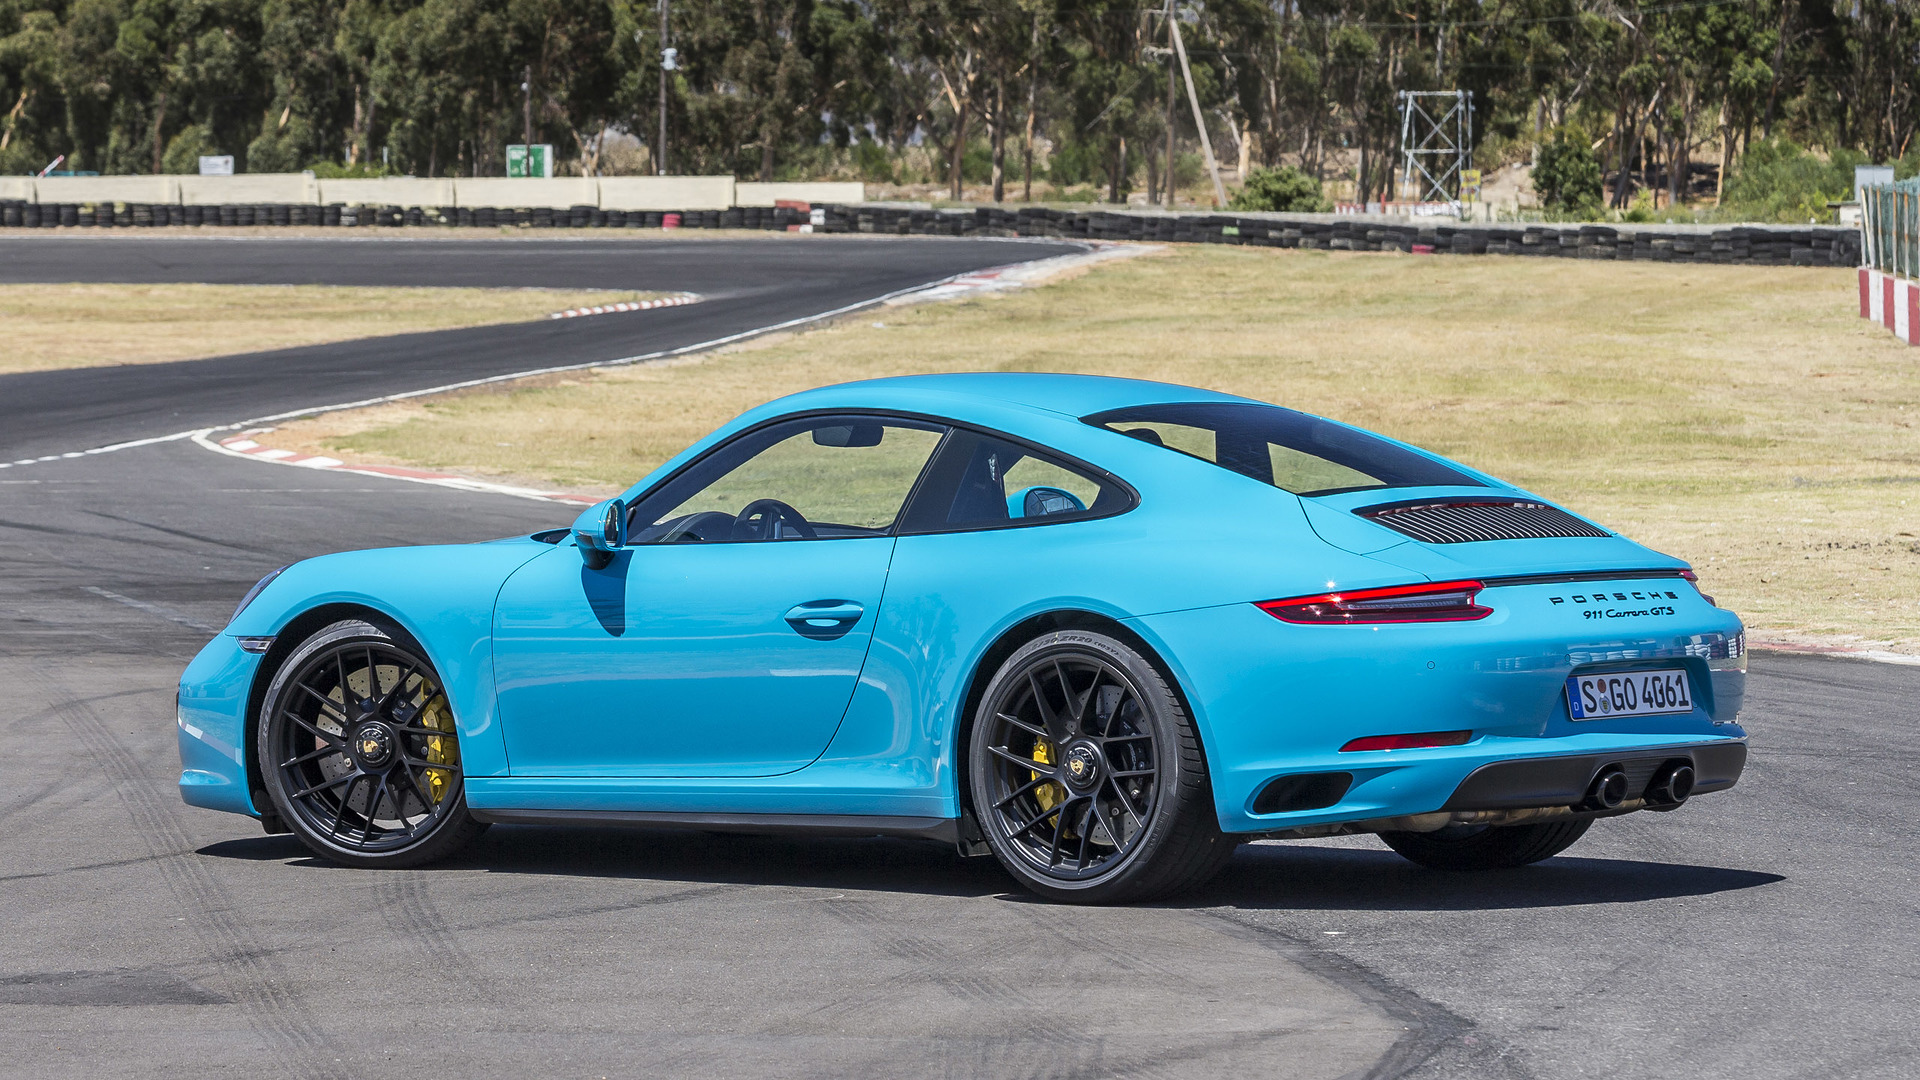 911 Carrera Gts >> 2017 Porsche 911 Carrera Gts First Drive Falling For The Middle Child